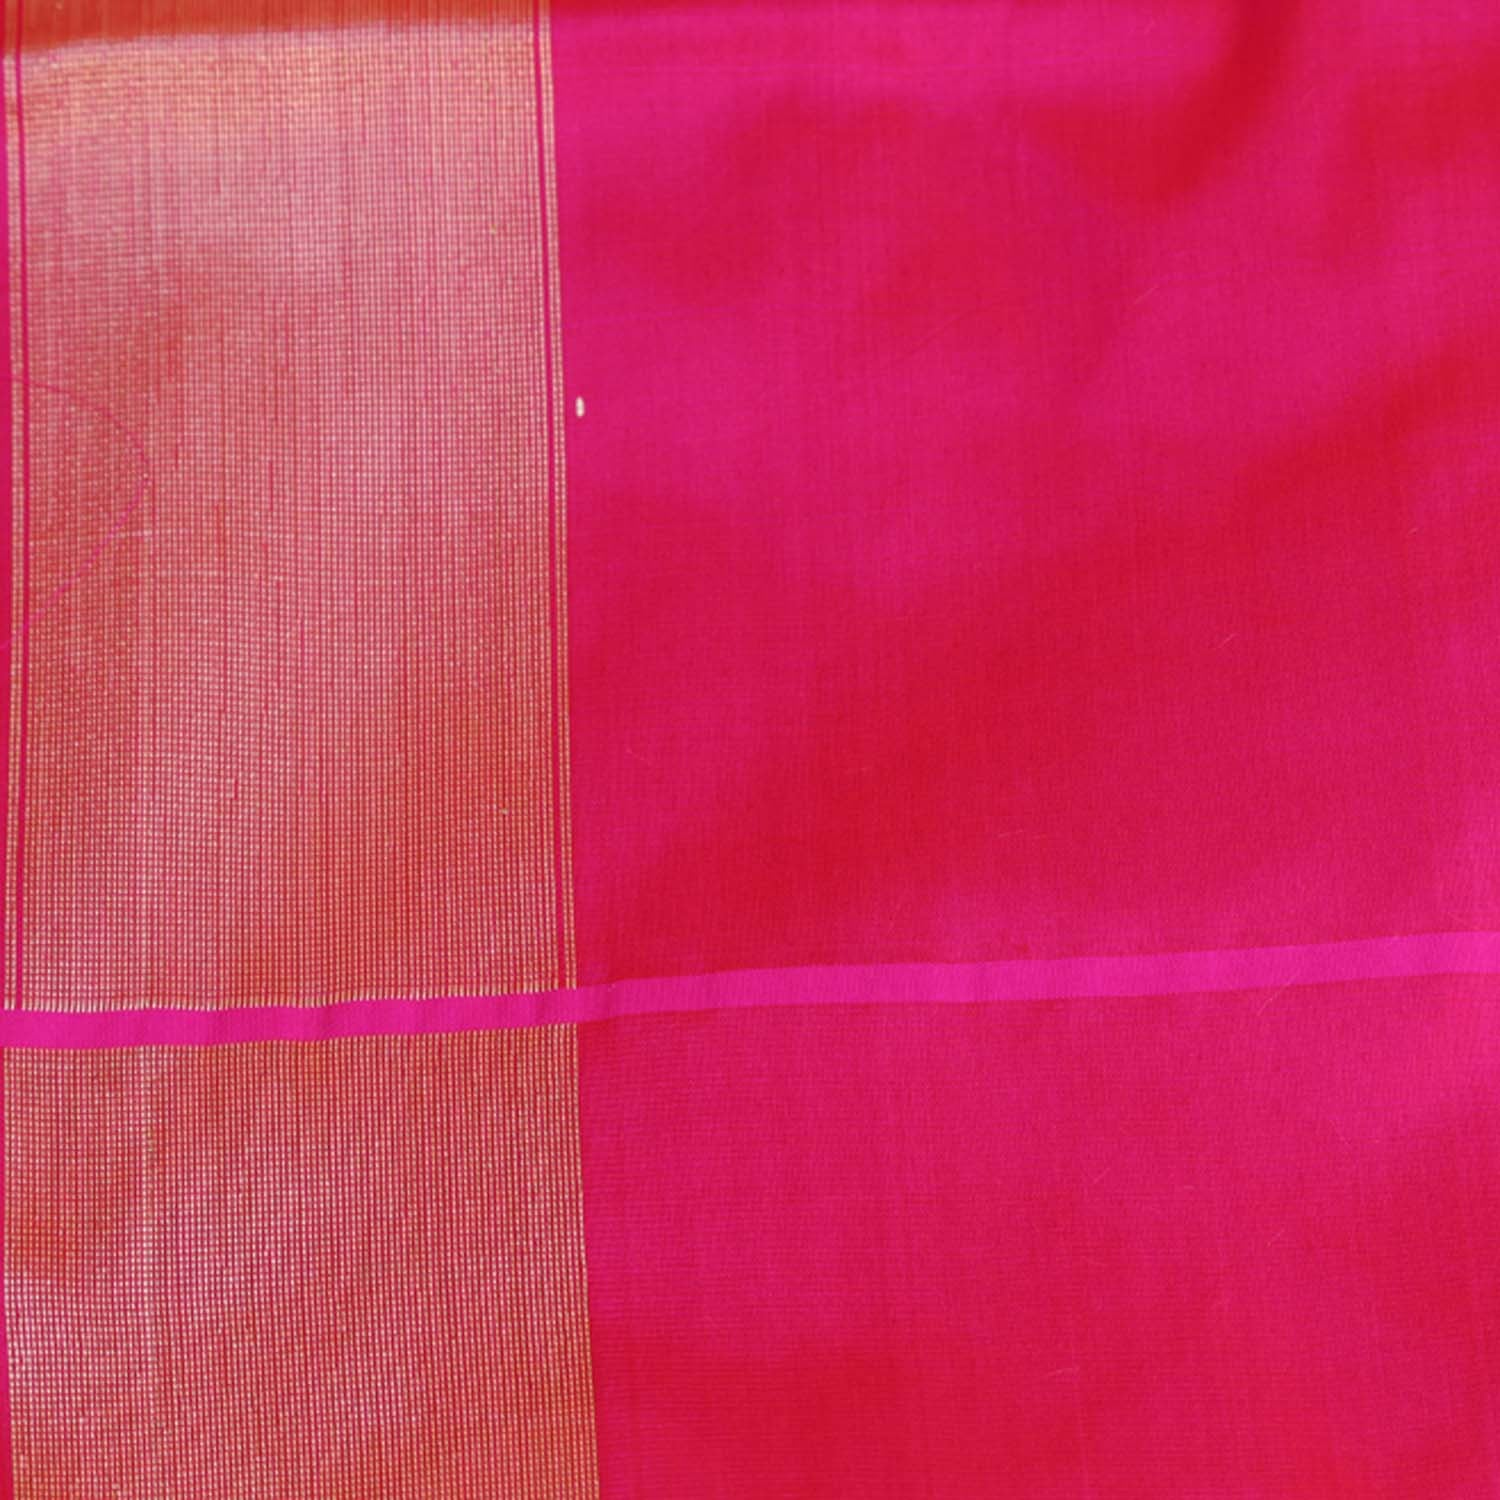 Rust-Indian Pink Shot Color Pure Katan Silk Banarasi Handloom Saree - Tilfi - 6